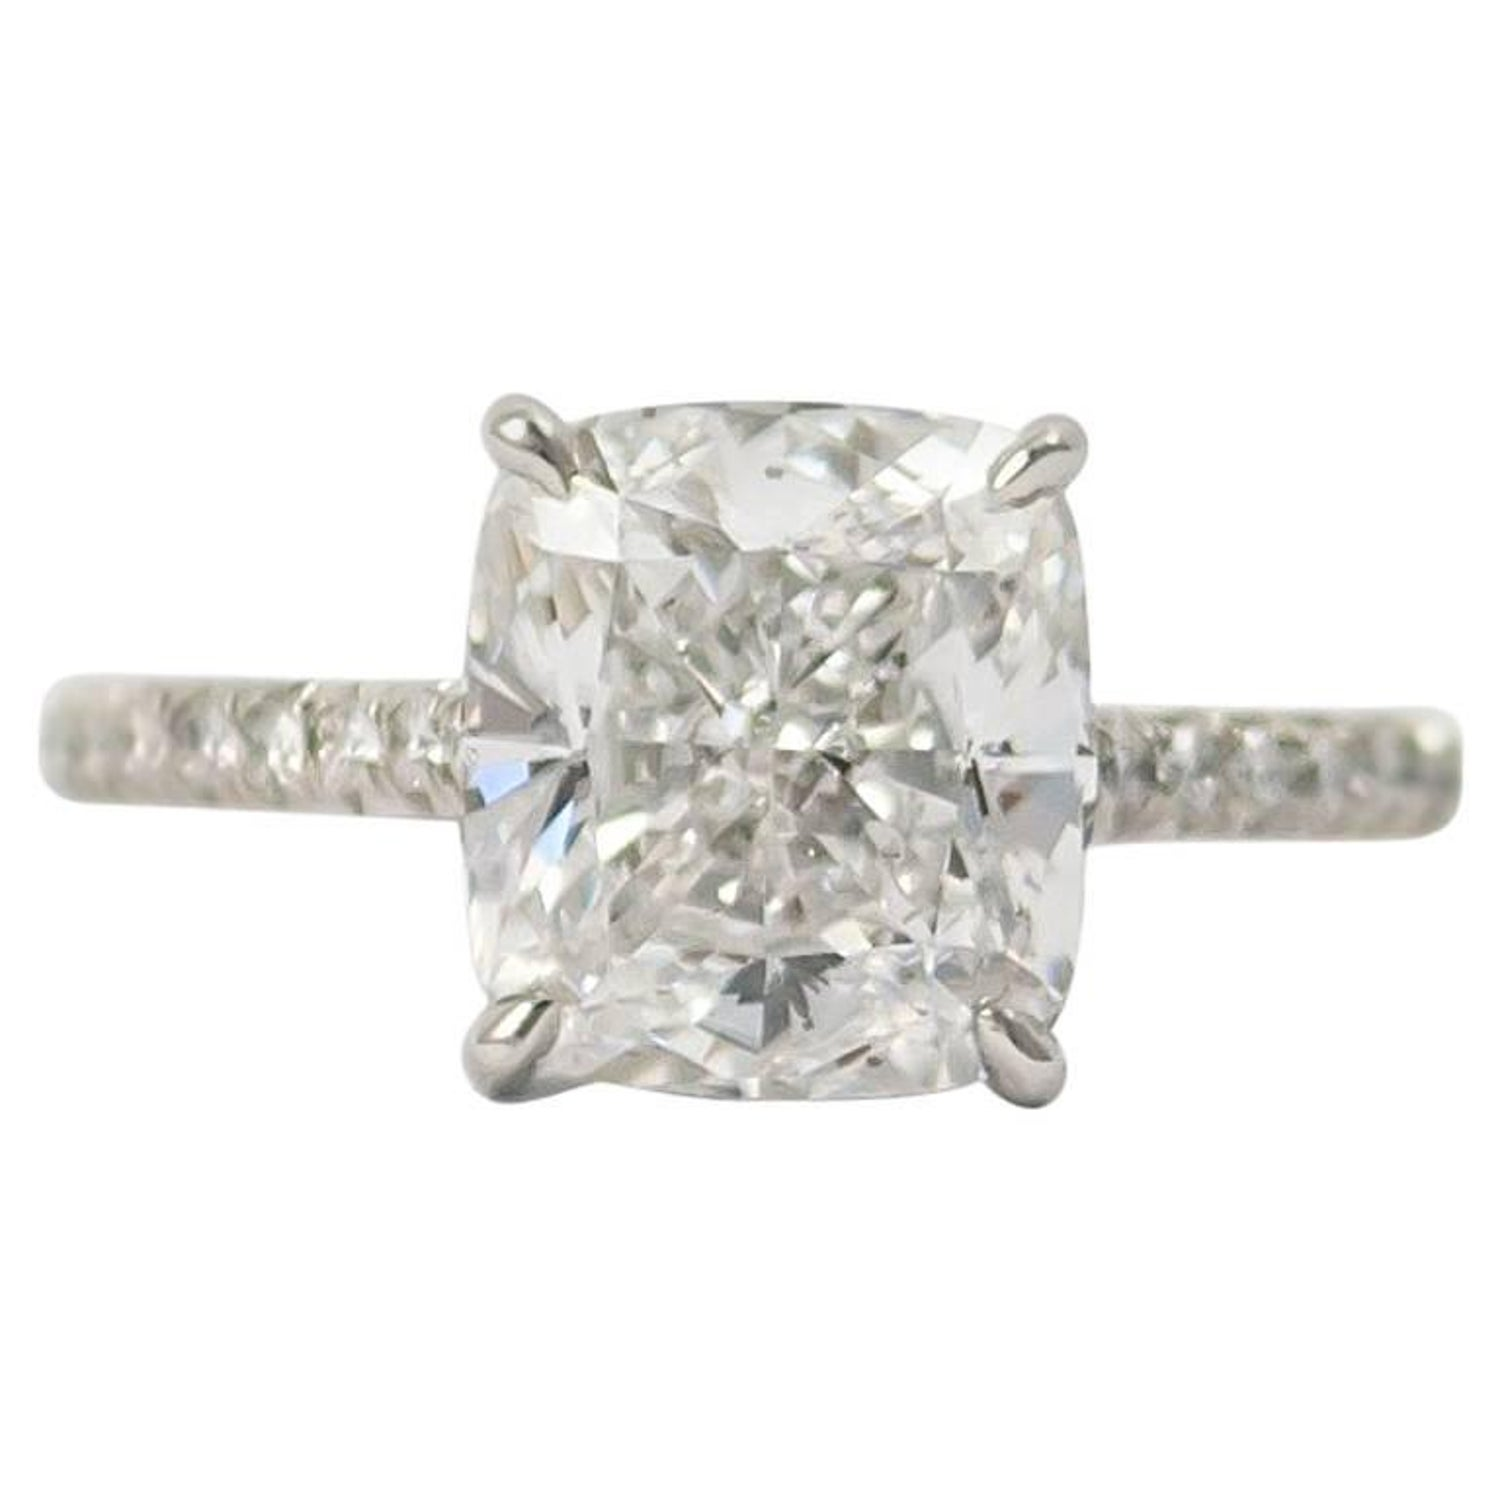 product michaels at set price g j loose i h jewelers great diana clarity mounting diamond a cert carat color in round platinum plat five